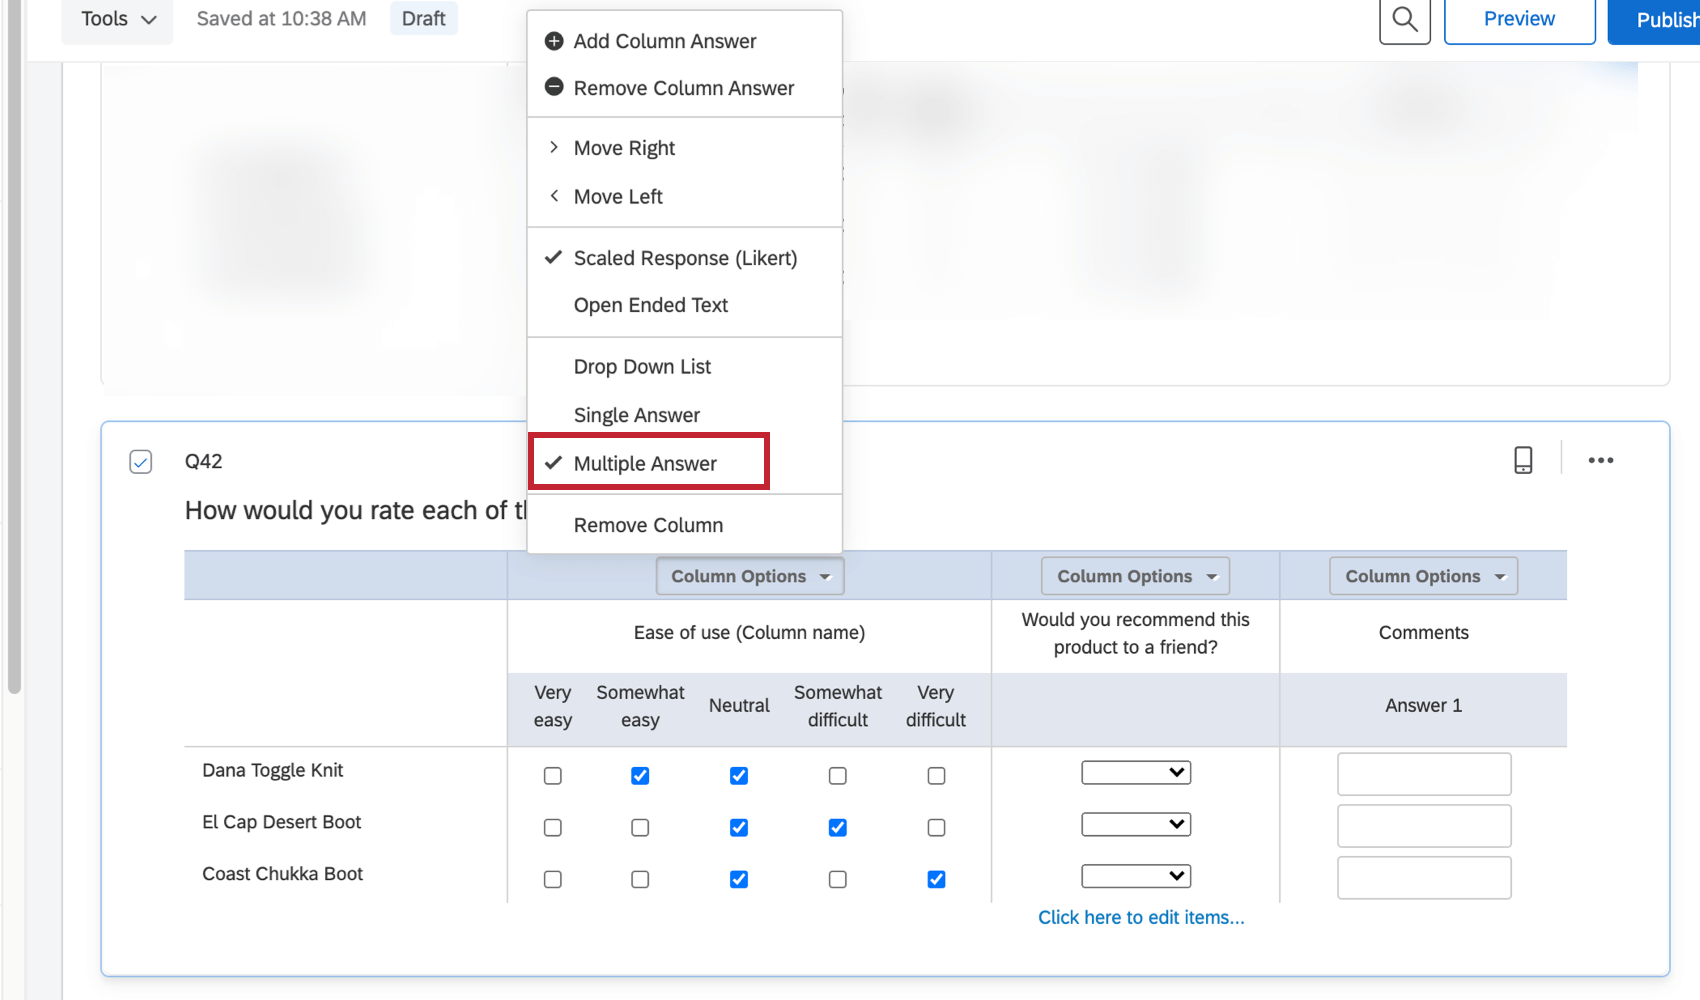 multiple answer option under the column options dropdown